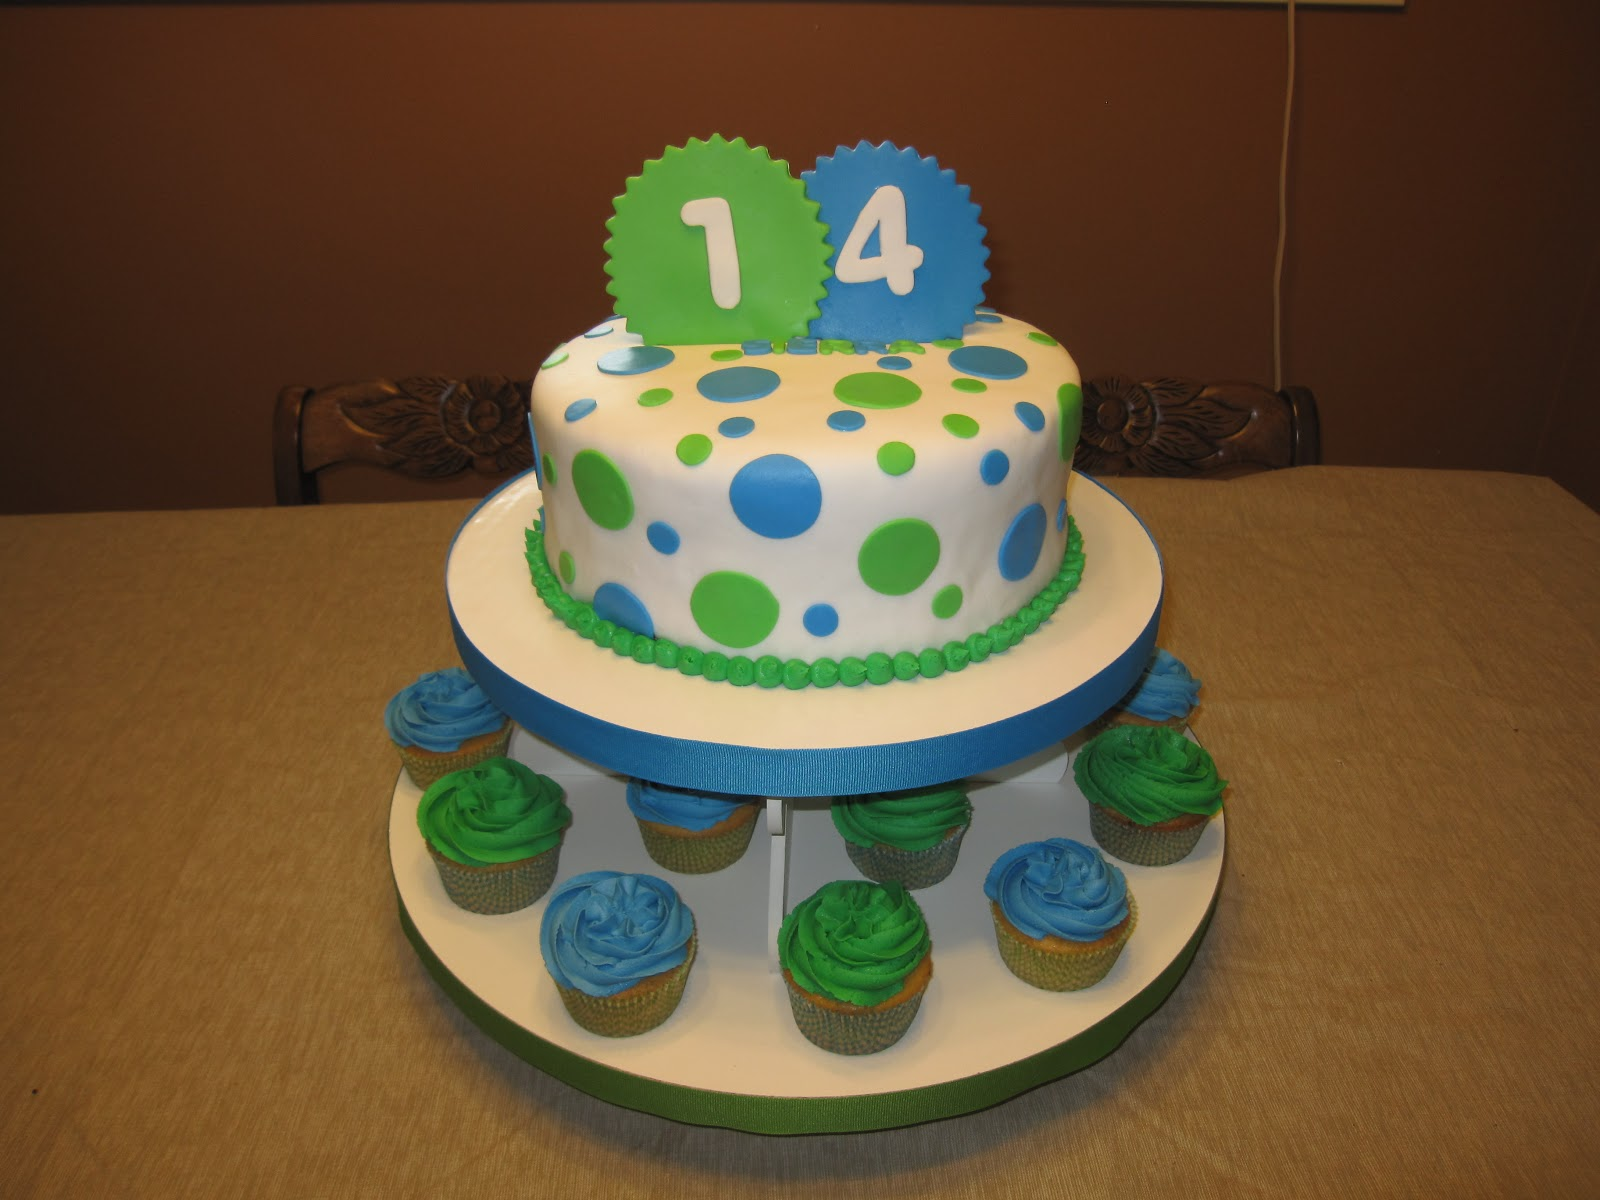 Birthday Cake Designs For 14 Year Old Boy : 14 Year Old Birthday Cakes